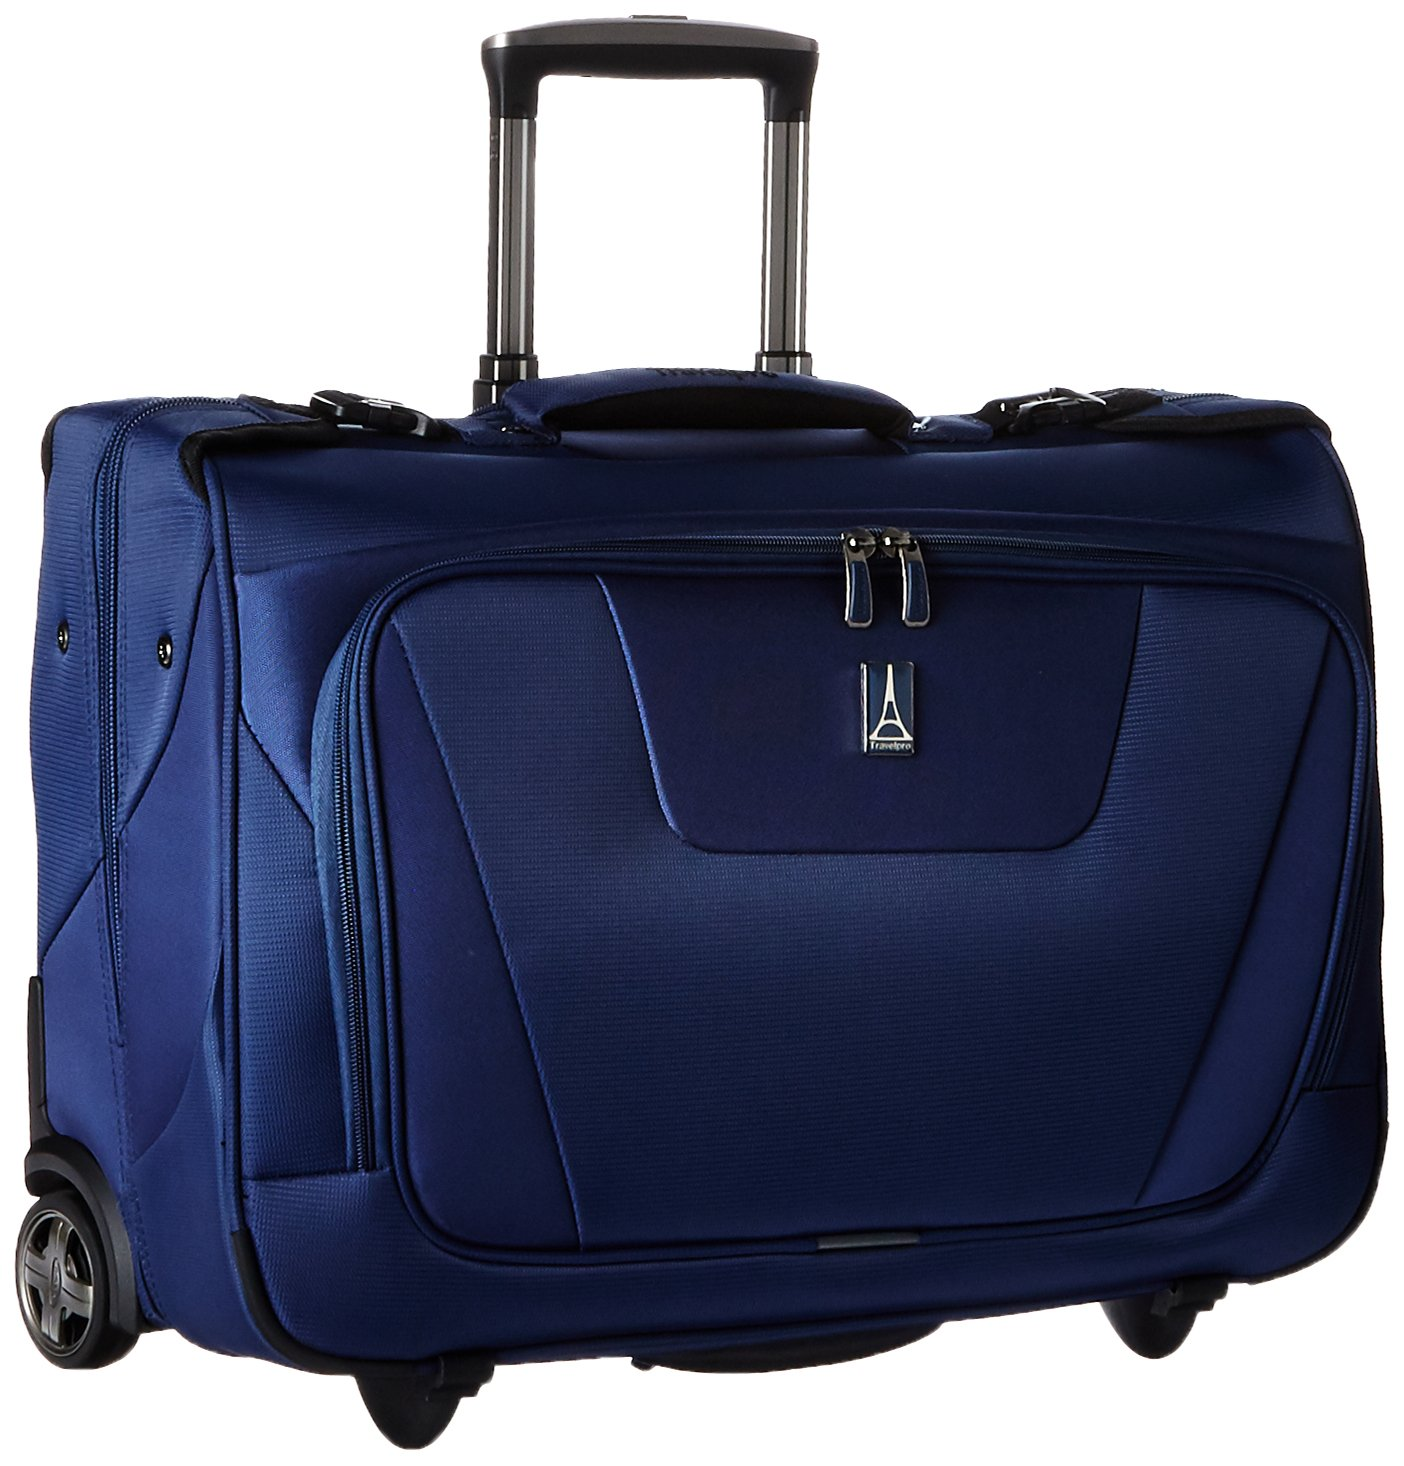 Travelpro Maxlite 4 Carry-on Garment Bag, Blue Travelpro International Inc. 401154002